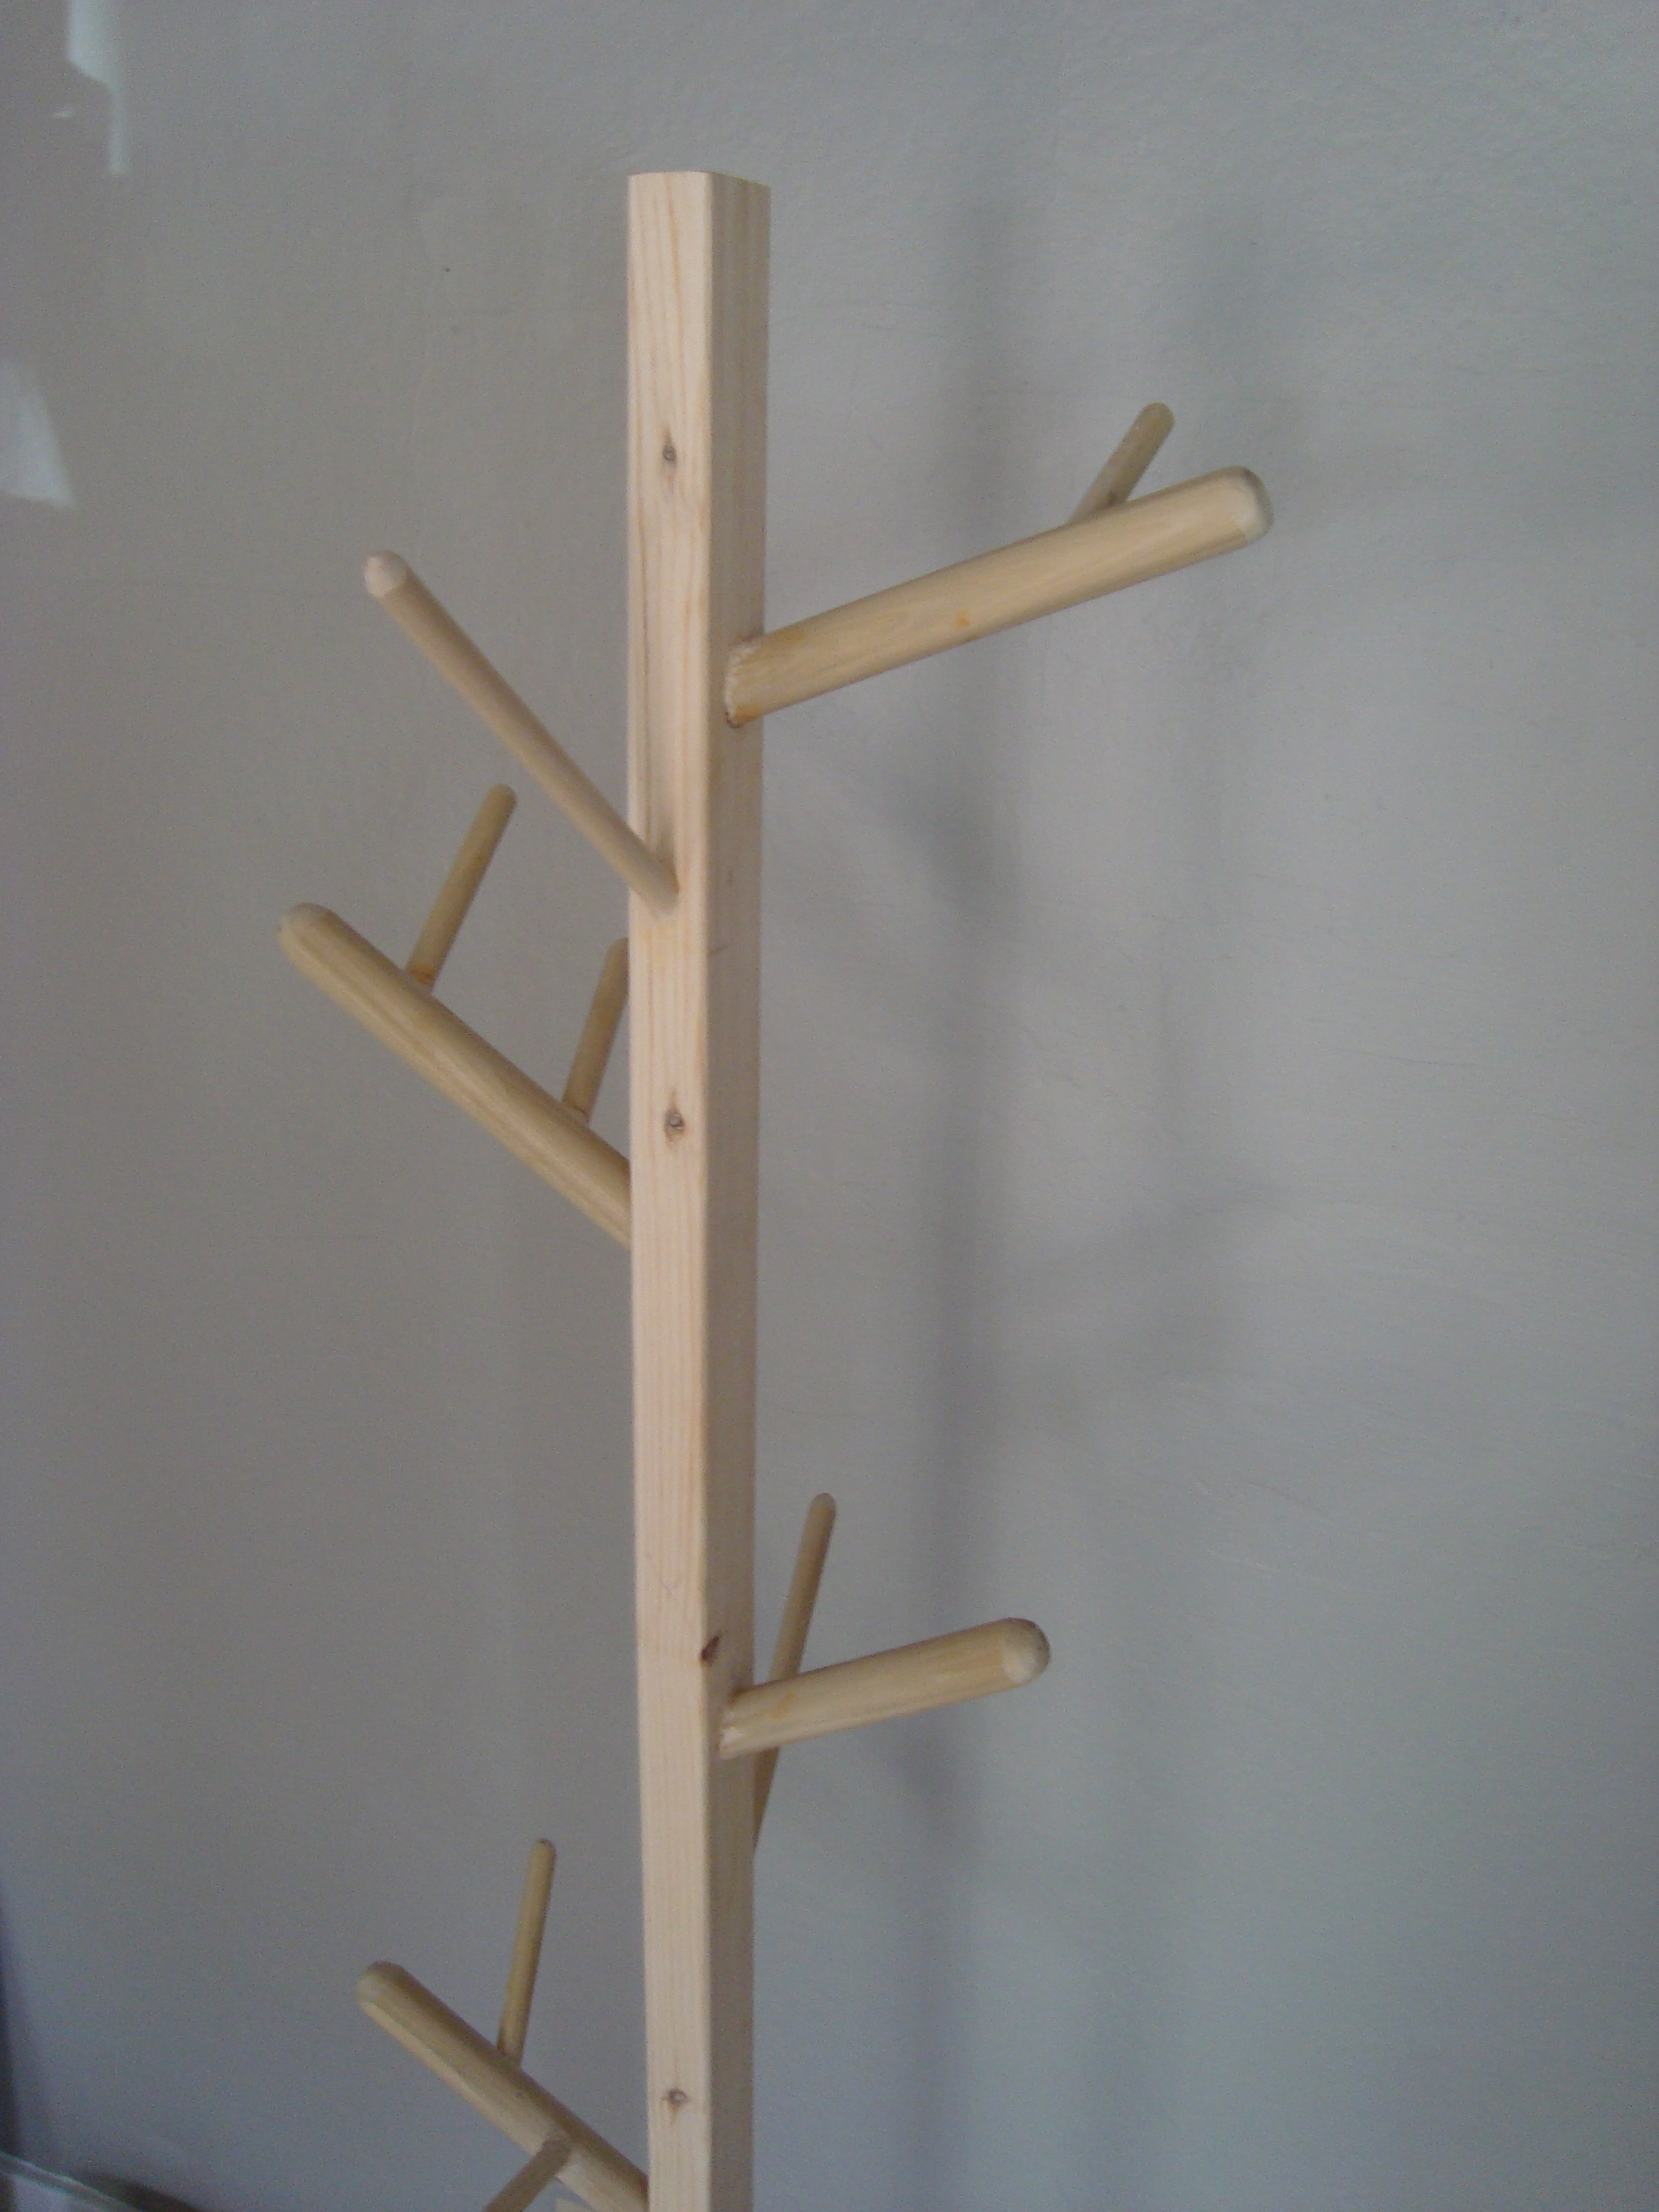 Diy diy tree coat stand plans free for Diy standing coat rack ideas